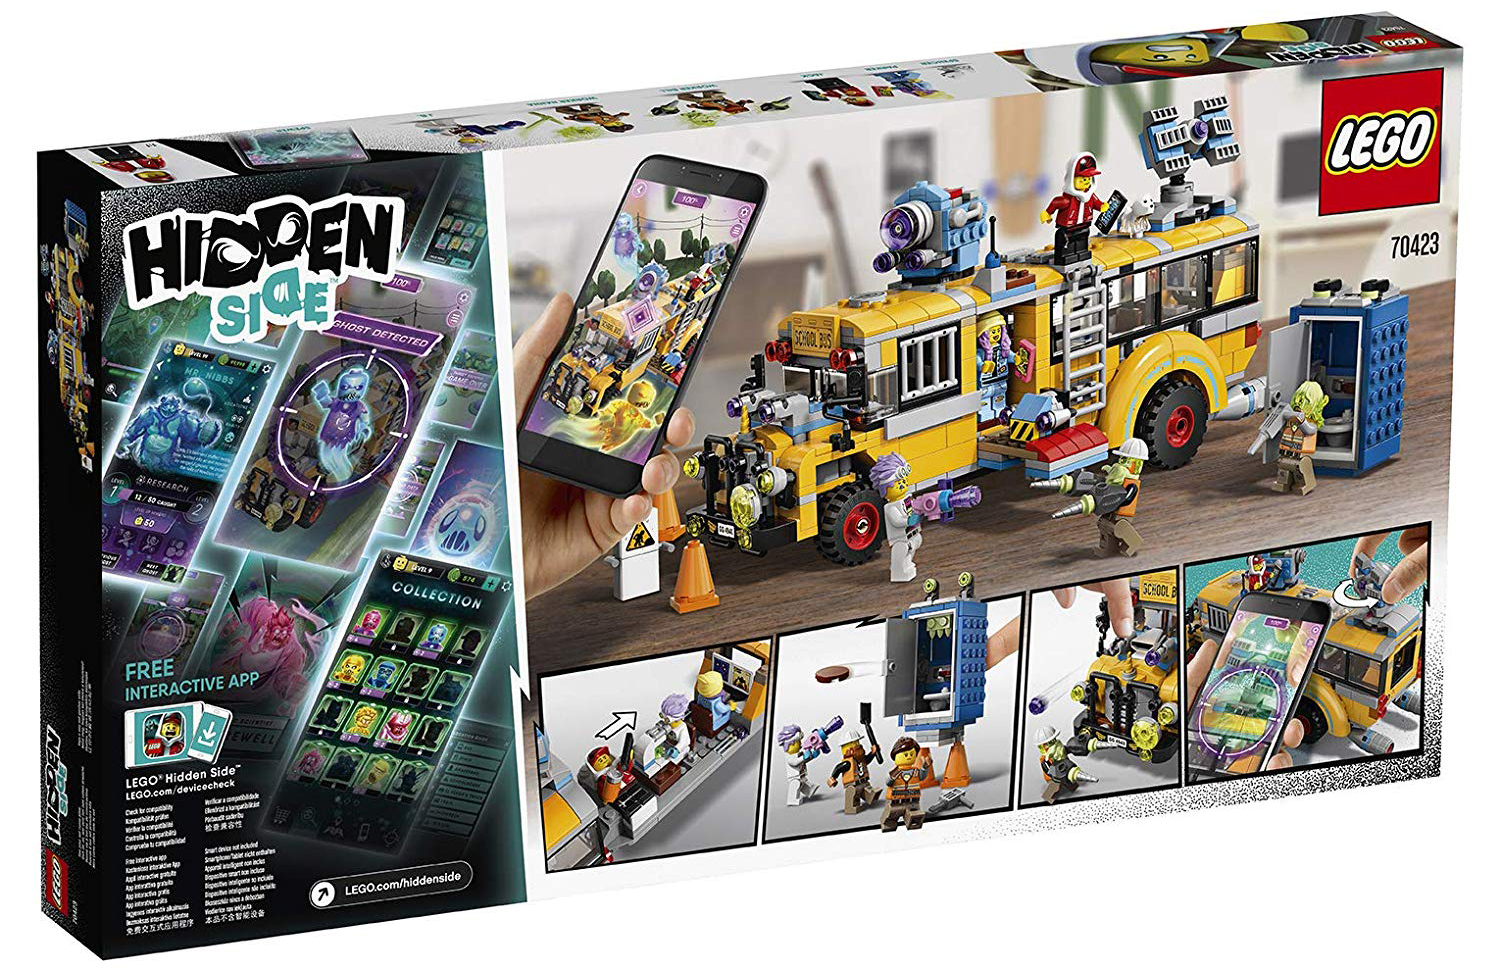 lego-hidden-side-bus-set-70423-box-rueckseite-back-2019 zusammengebaut.com